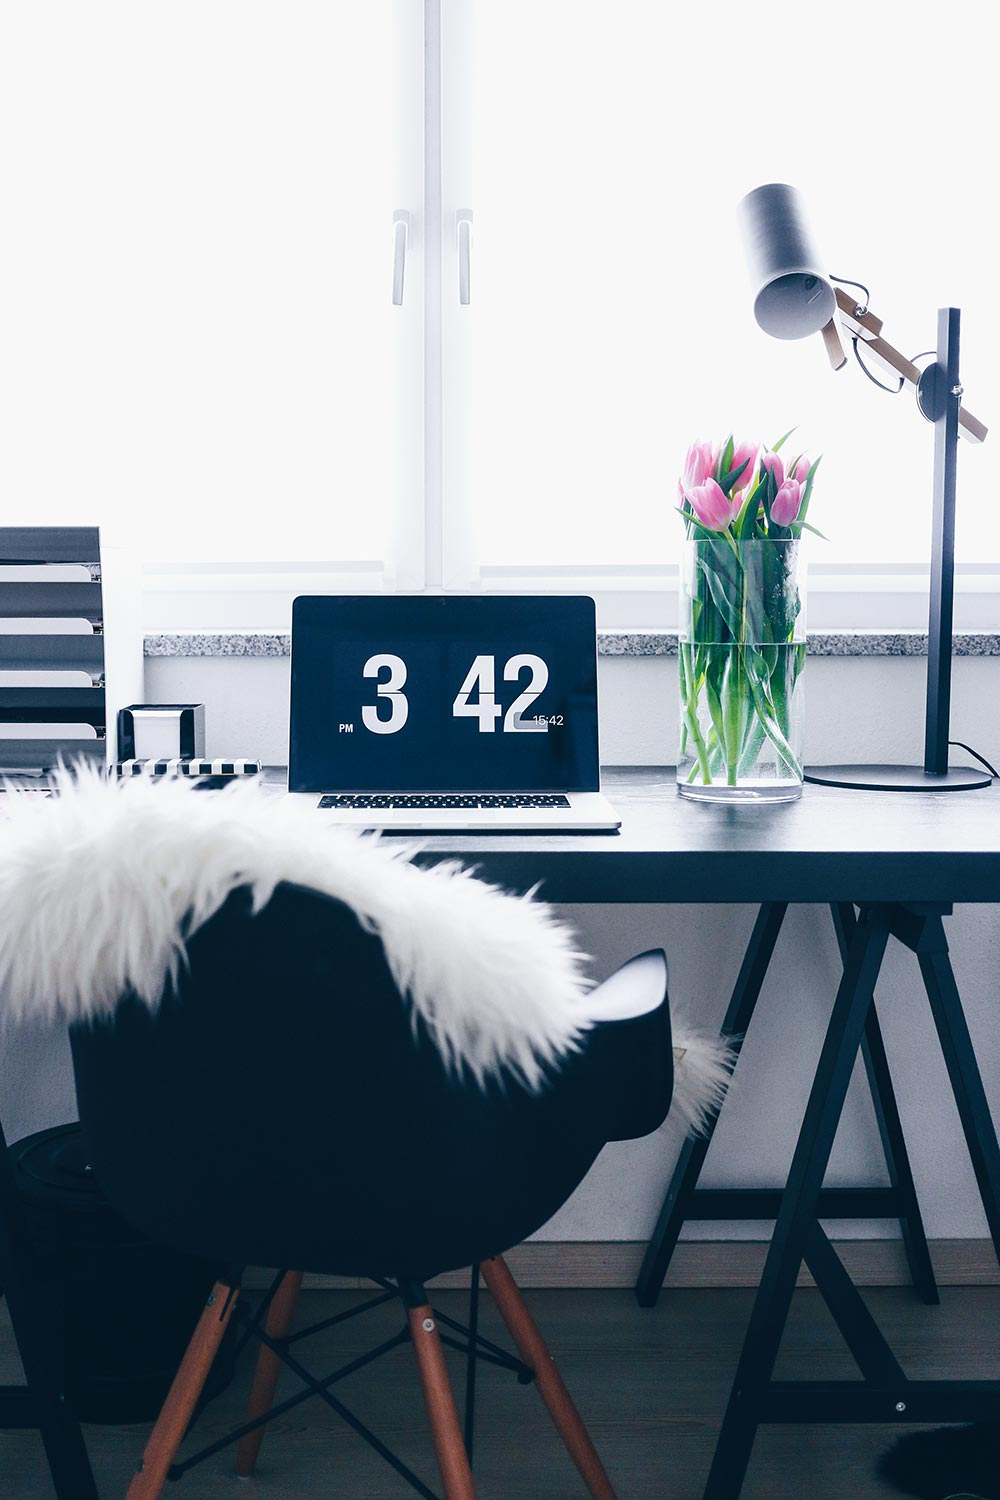 Mein Blogger Home Office: Stylisch, aber funktional! - Who is Mocca?